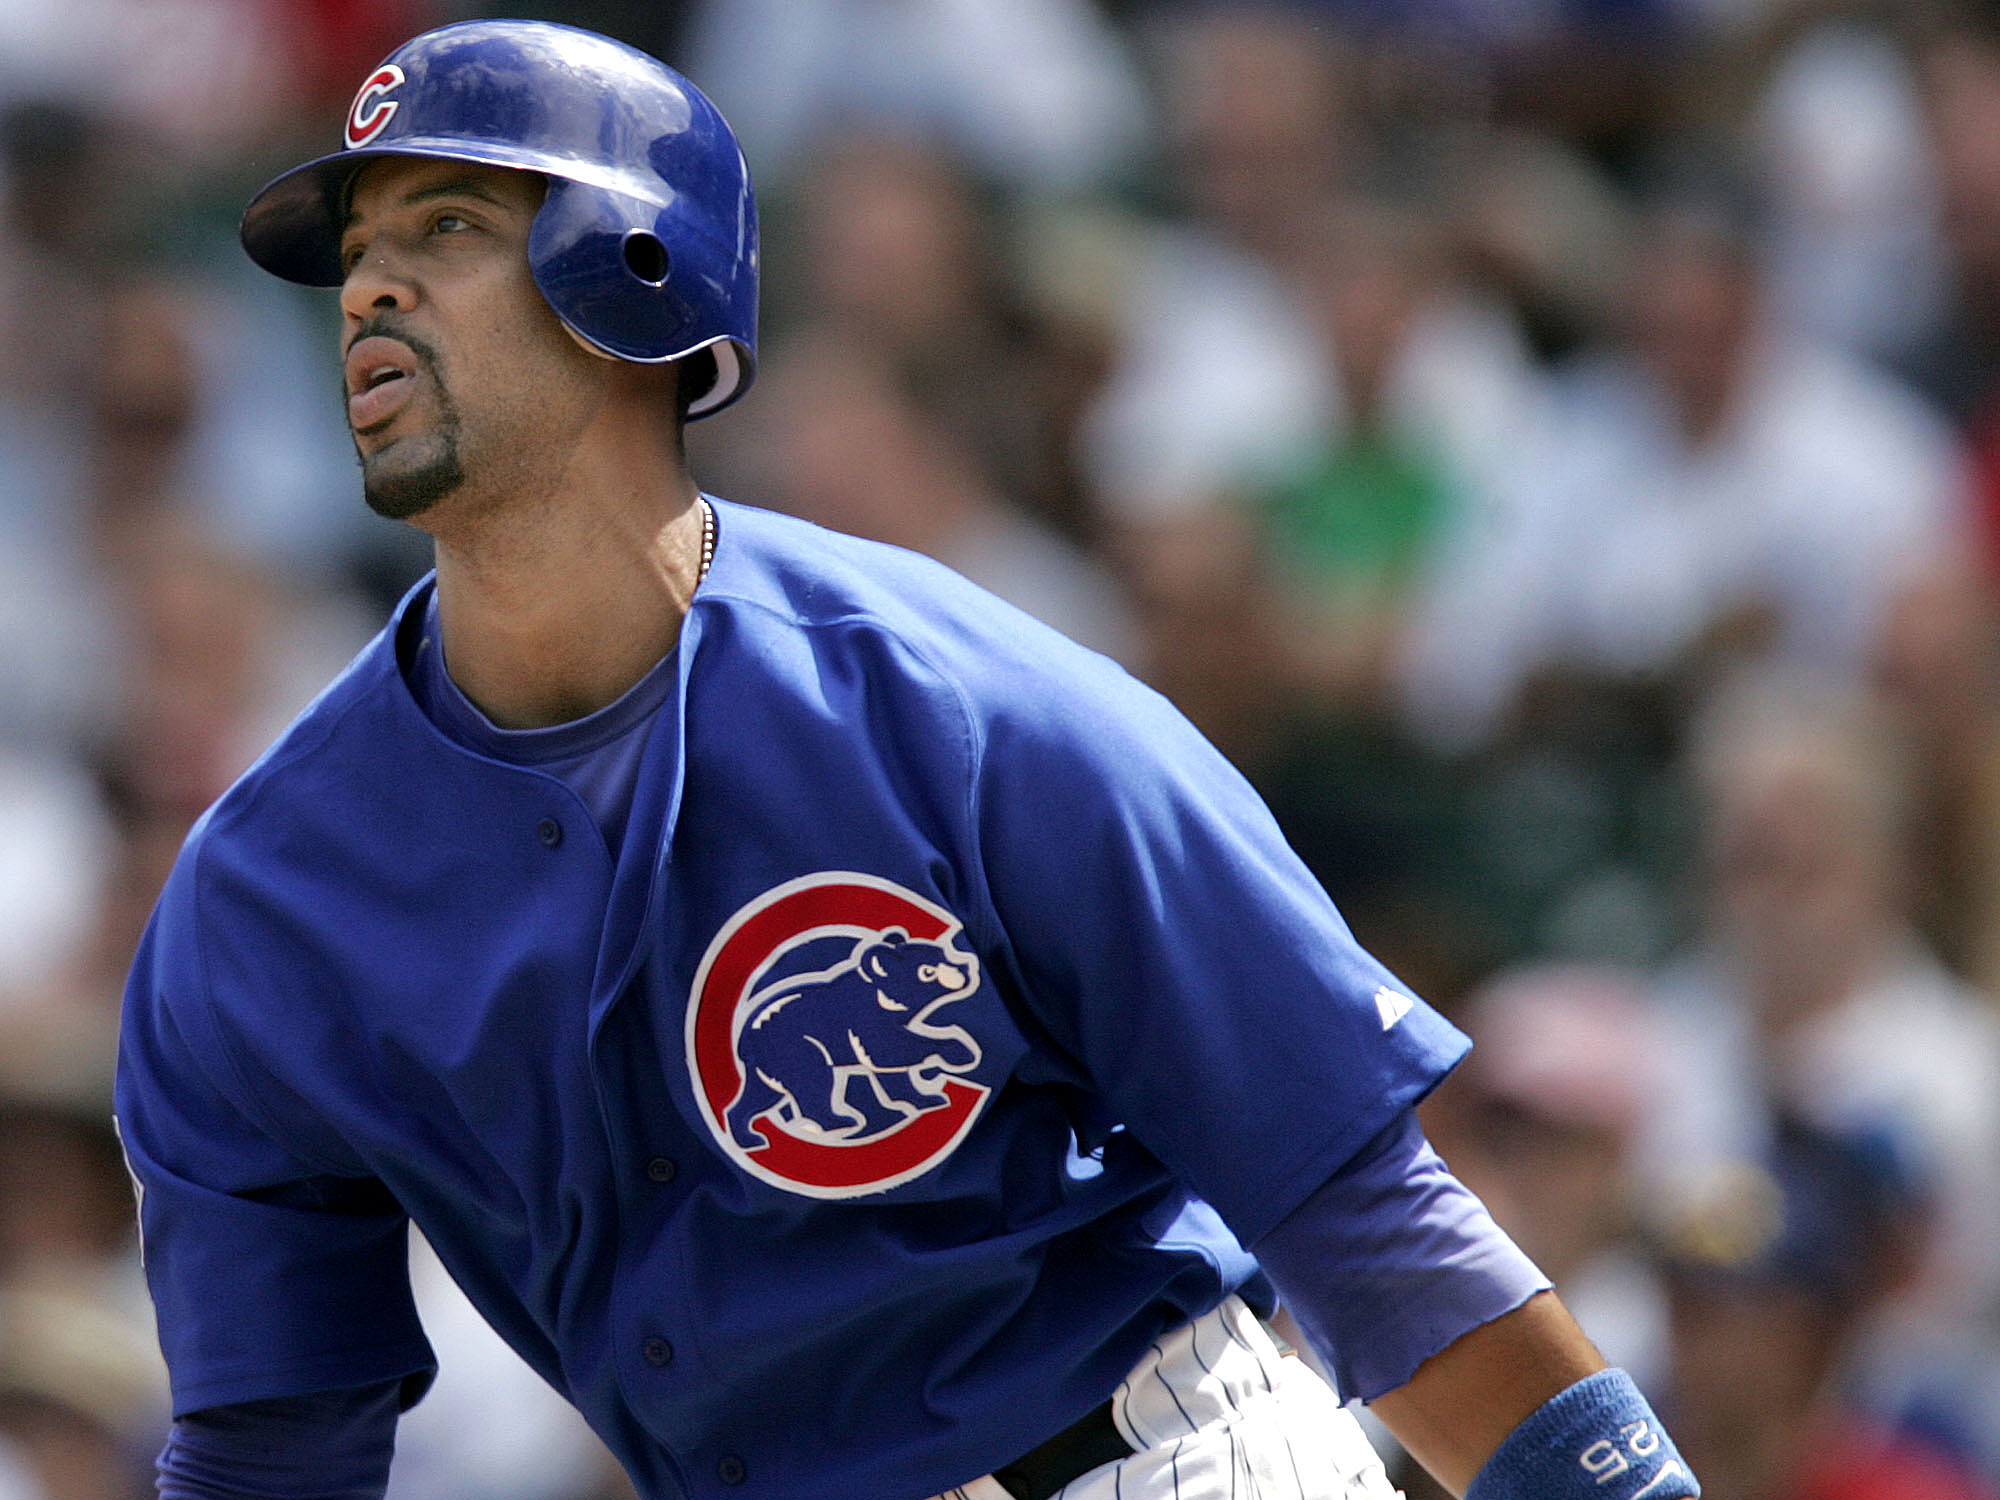 Derrek Lee, Chicago Cubs